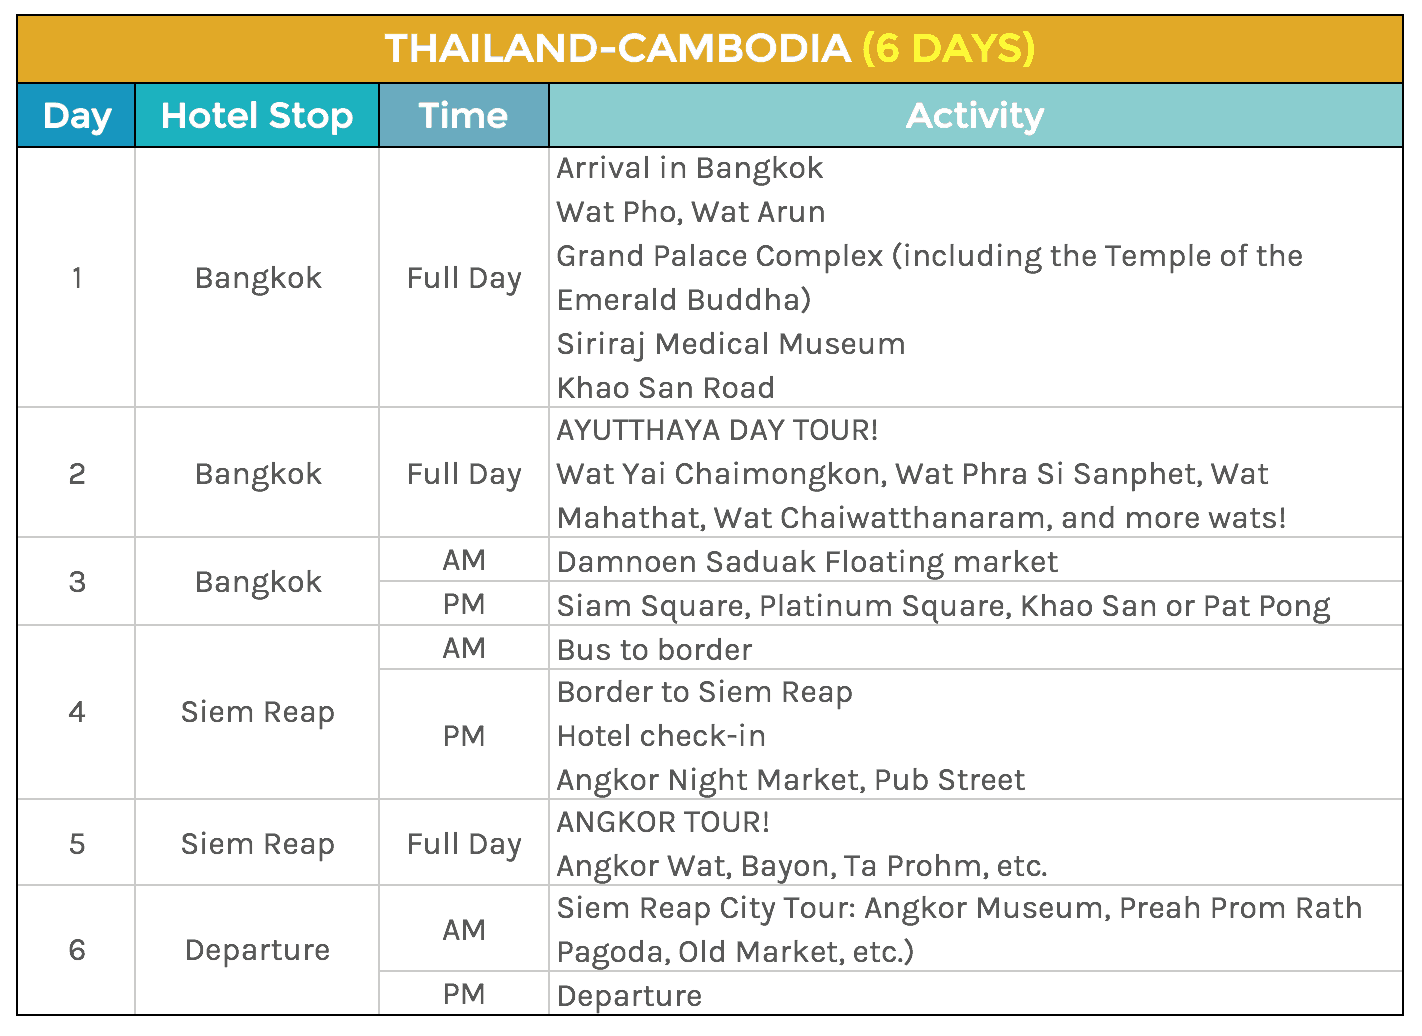 This Itinerary Will Take You To Angkor Wat In Siem Reap And The Great Palace Wat Arun And Khao San In Bangkok Among Others